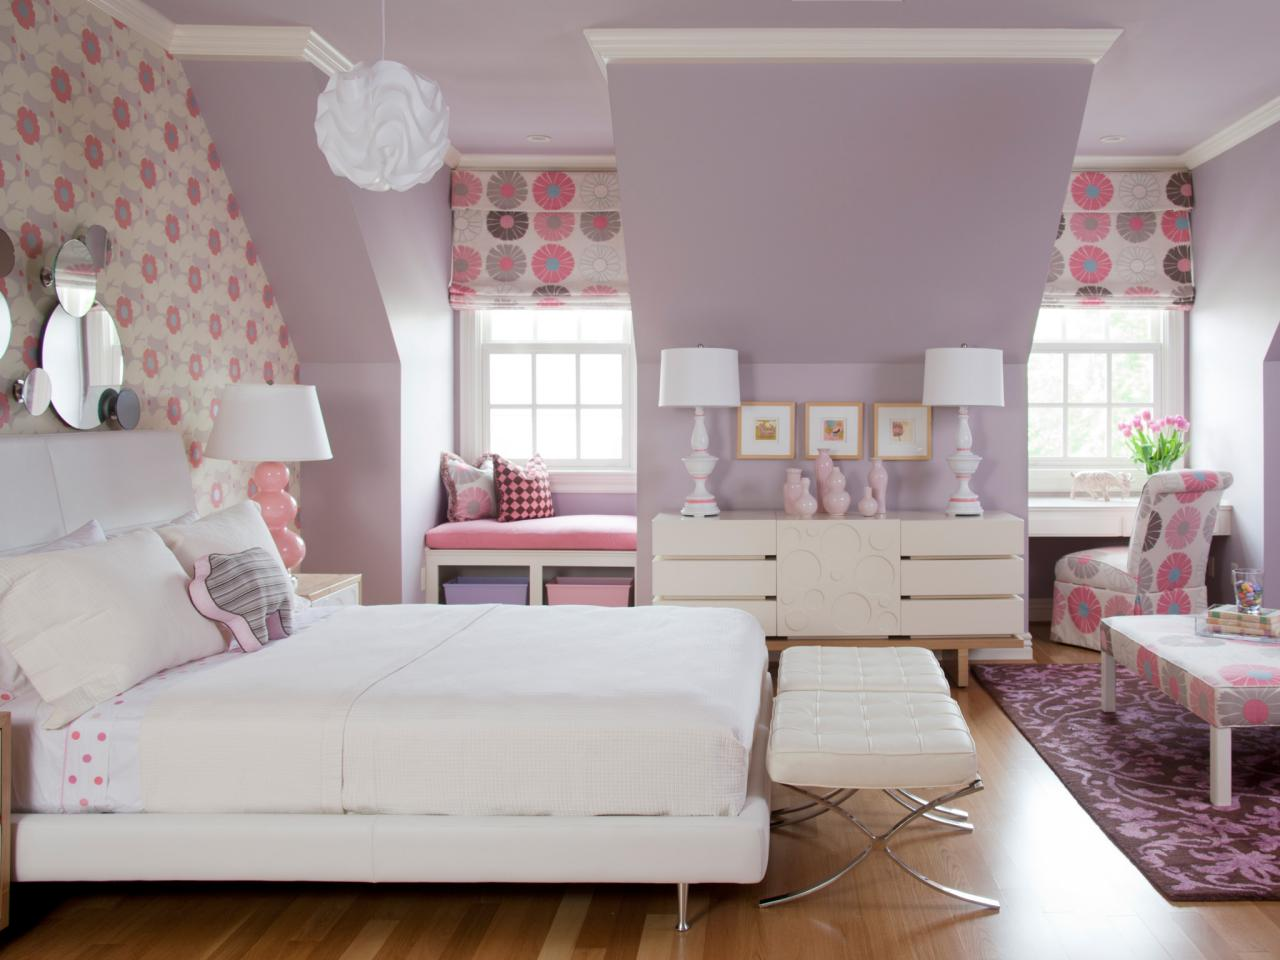 Pink bedroom paint colors - Coral And Kelly Green Bedroom